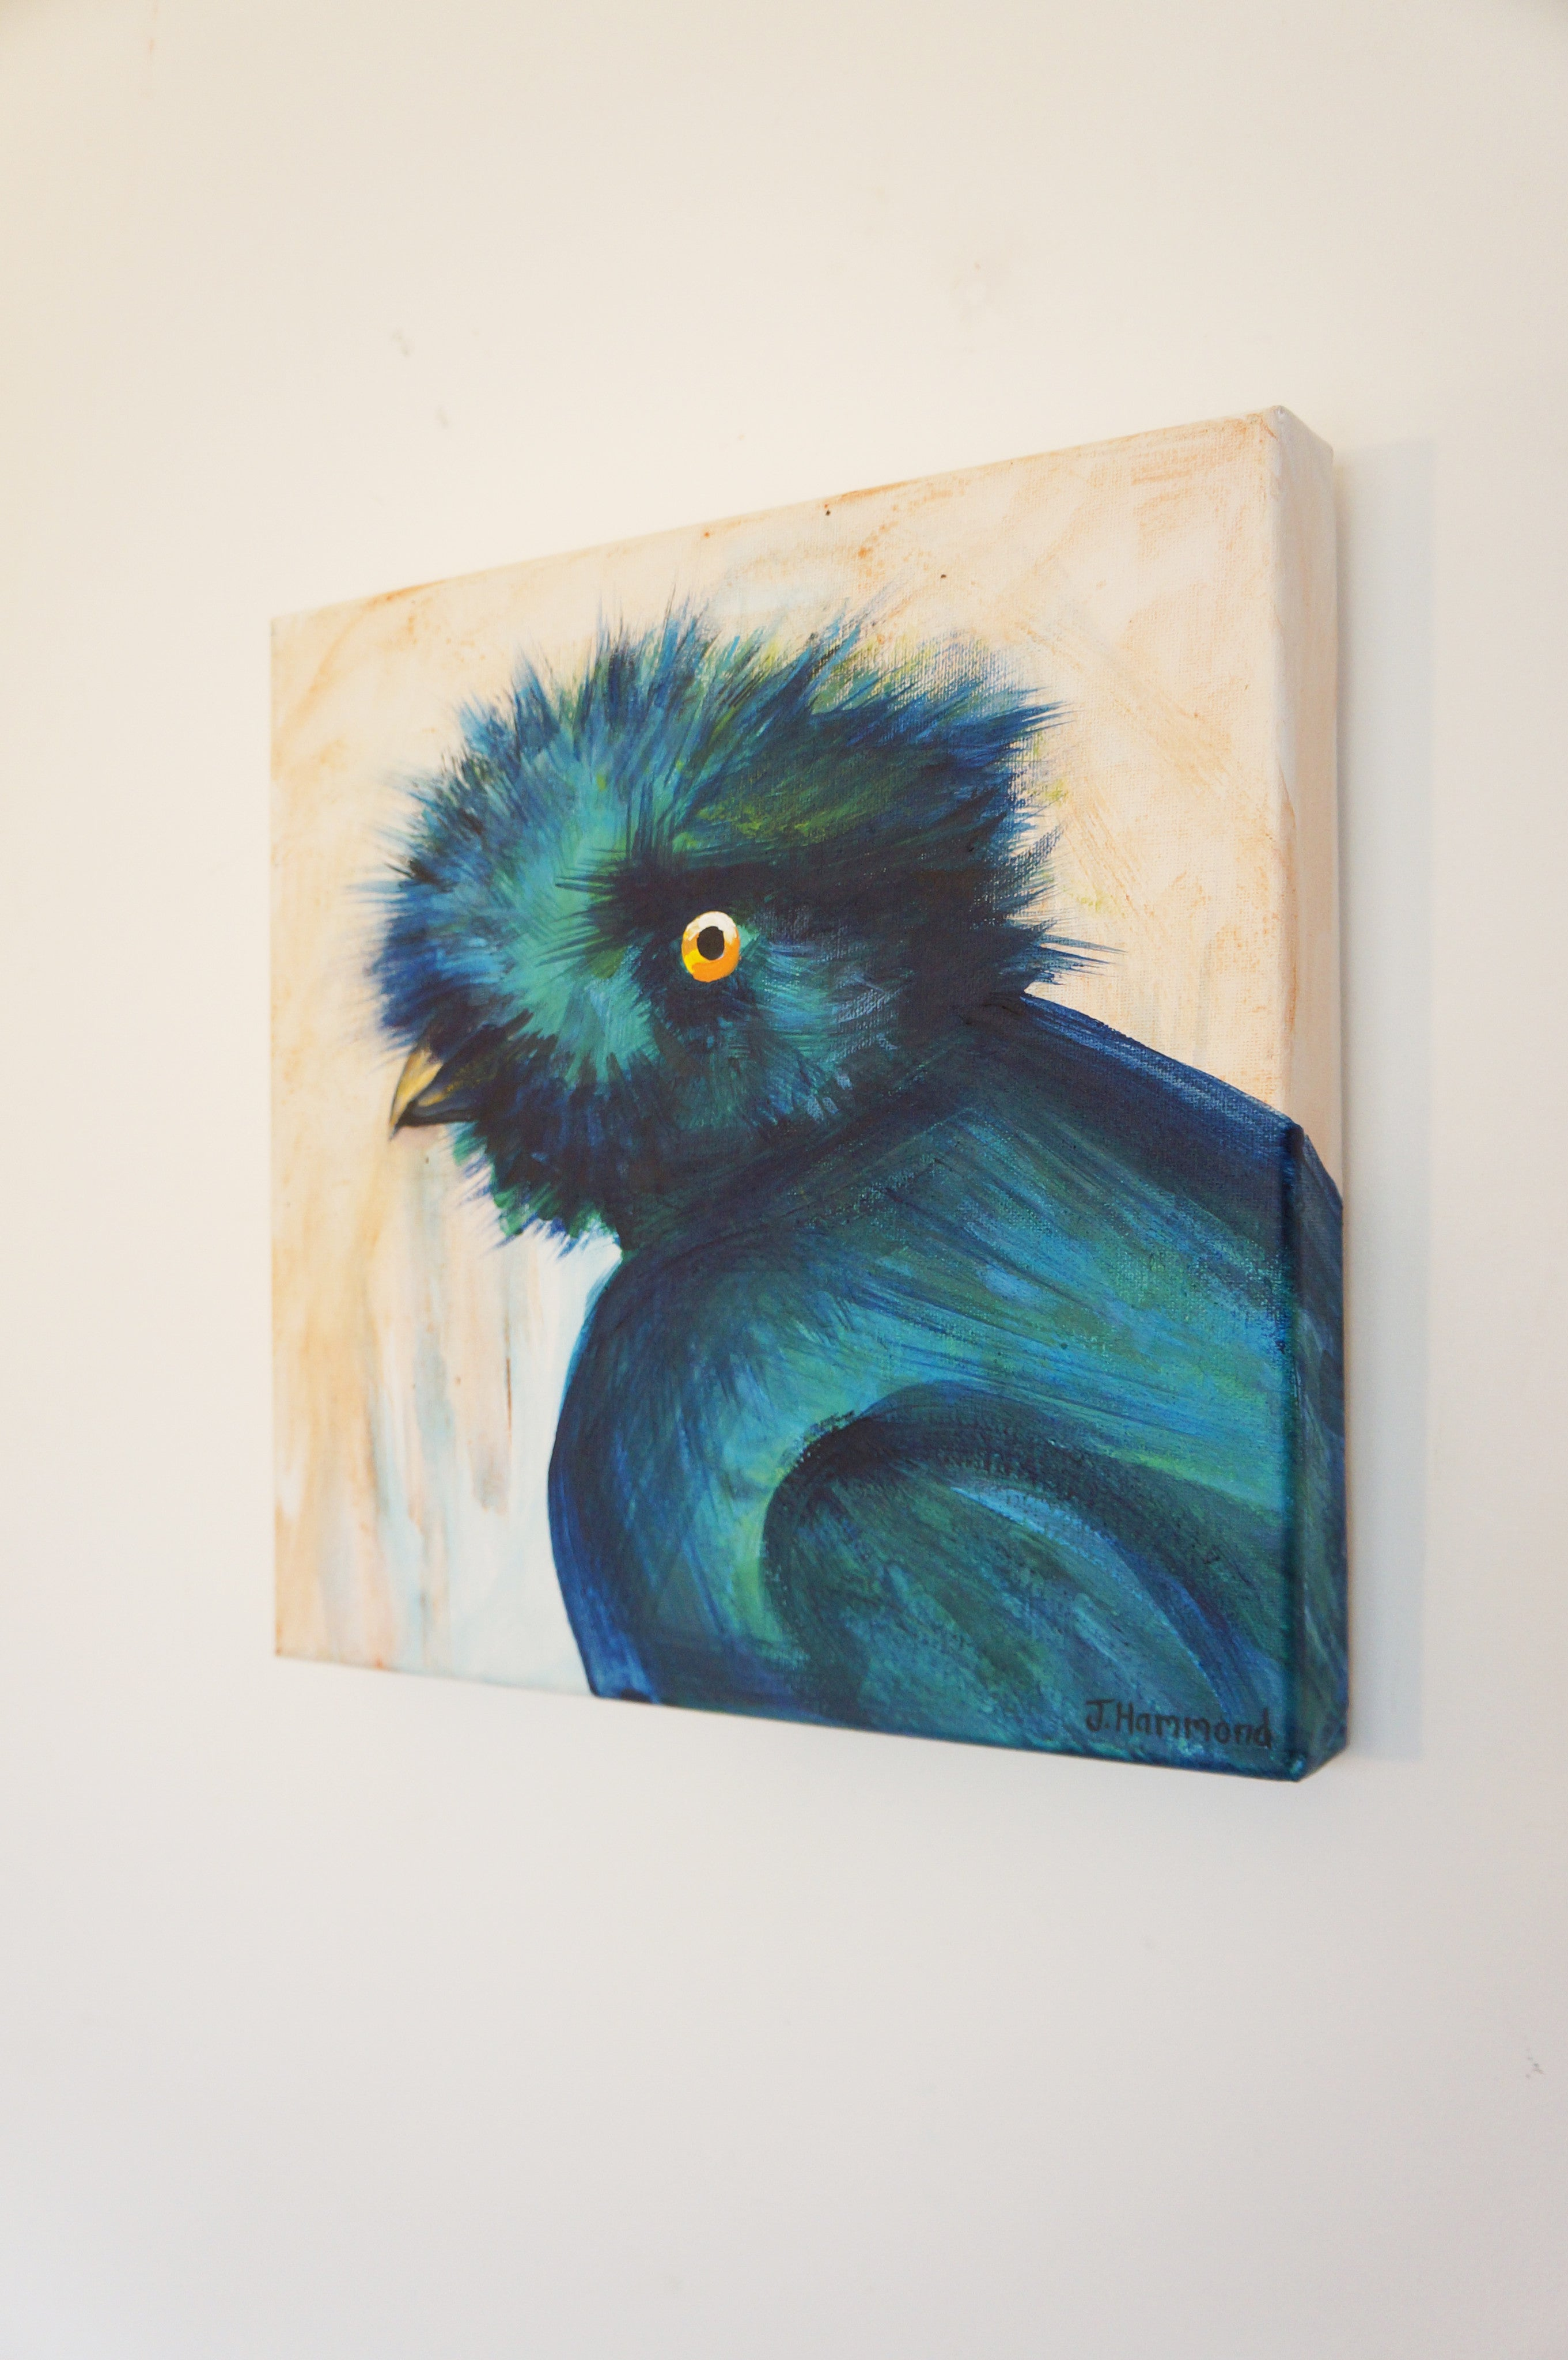 Bad Hair Day - Bird Portrait Painting  Smart Deco Homeware Lighting and Art by Jacqueline hammond